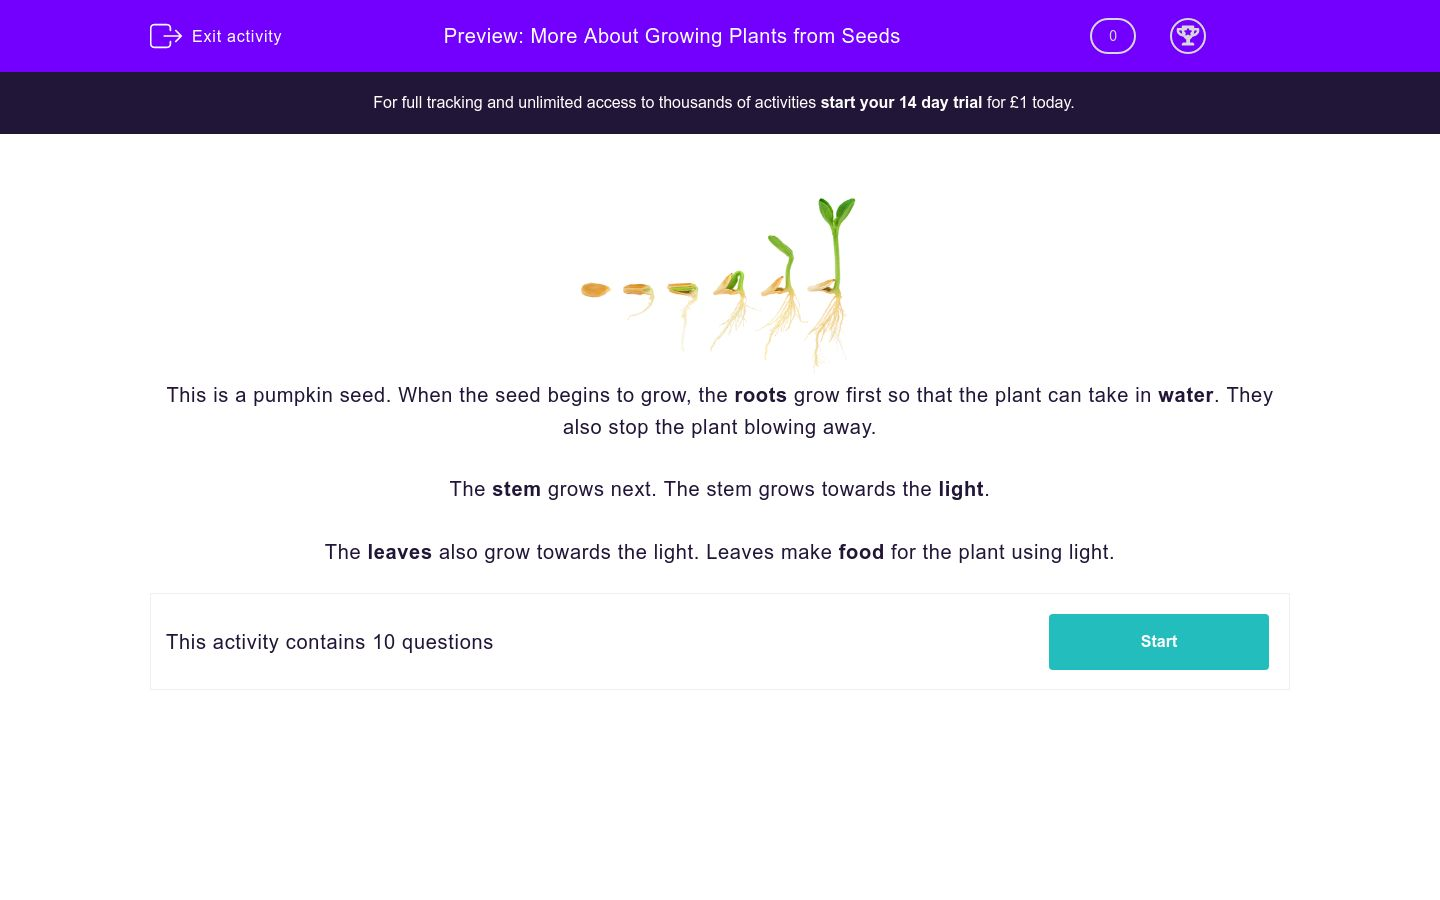 'More About Growing Plants from Seeds' worksheet